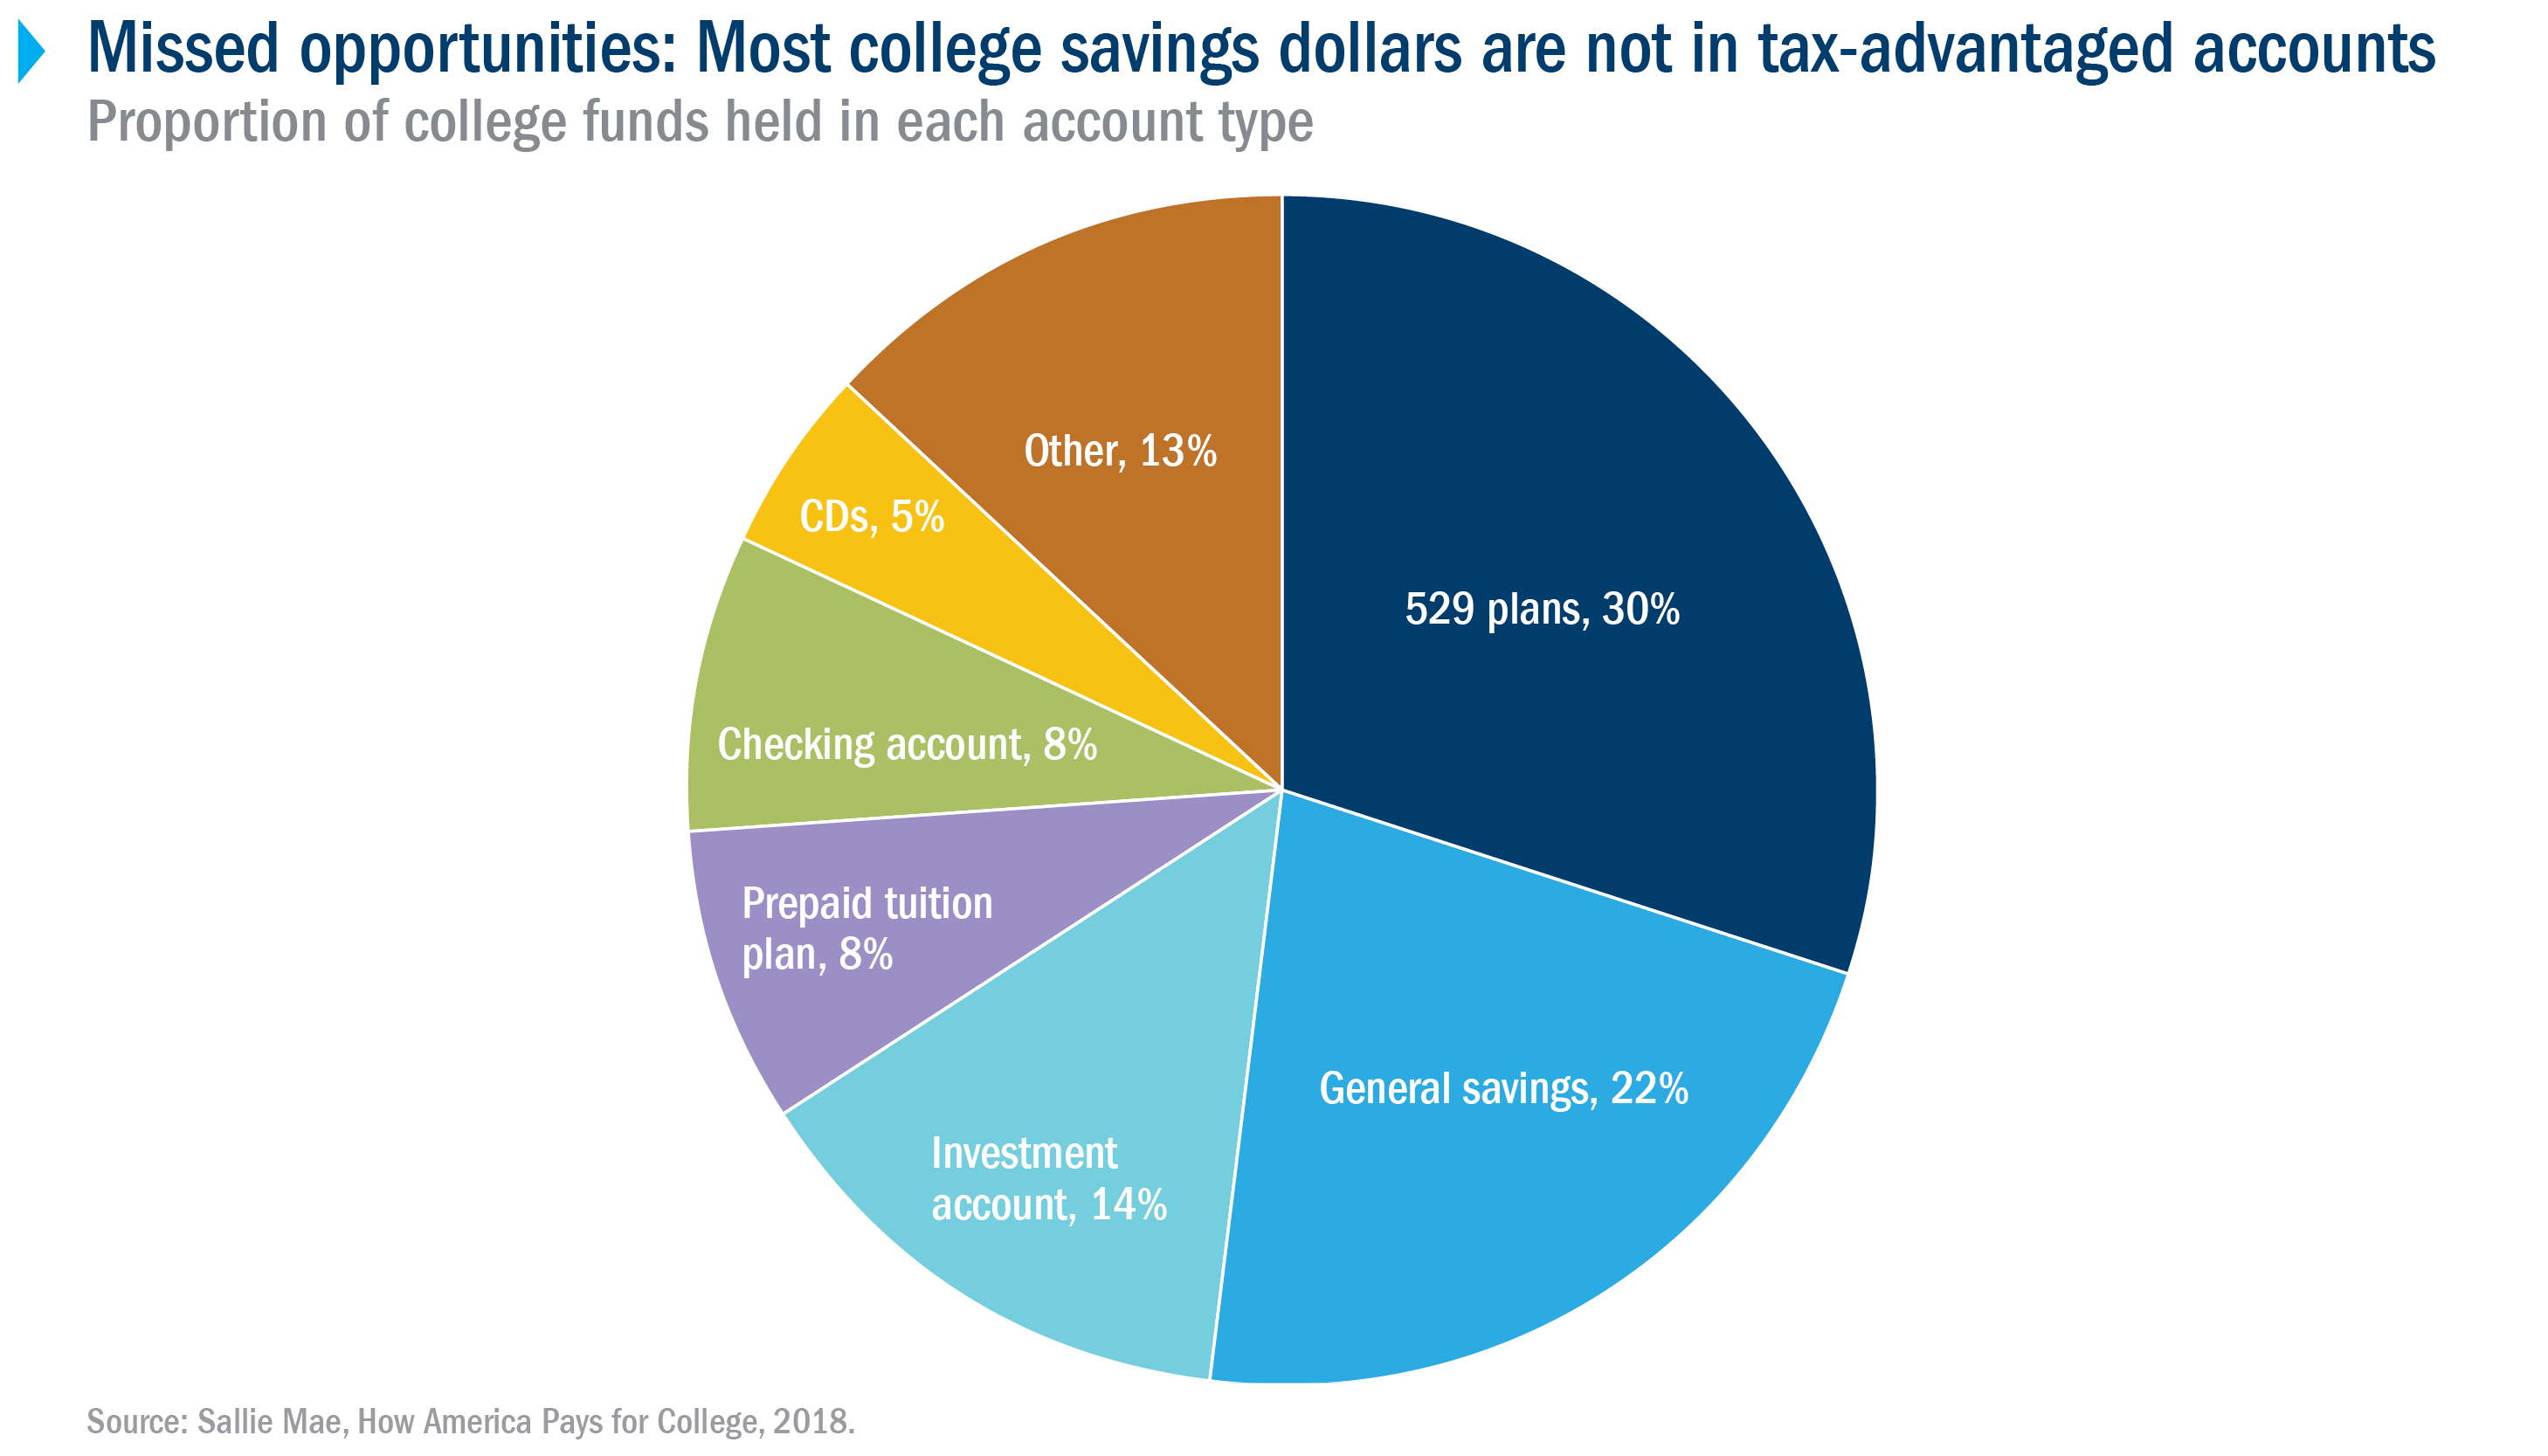 Missed opportunities: Most college savings dollars are not in tax-advantaged accounts